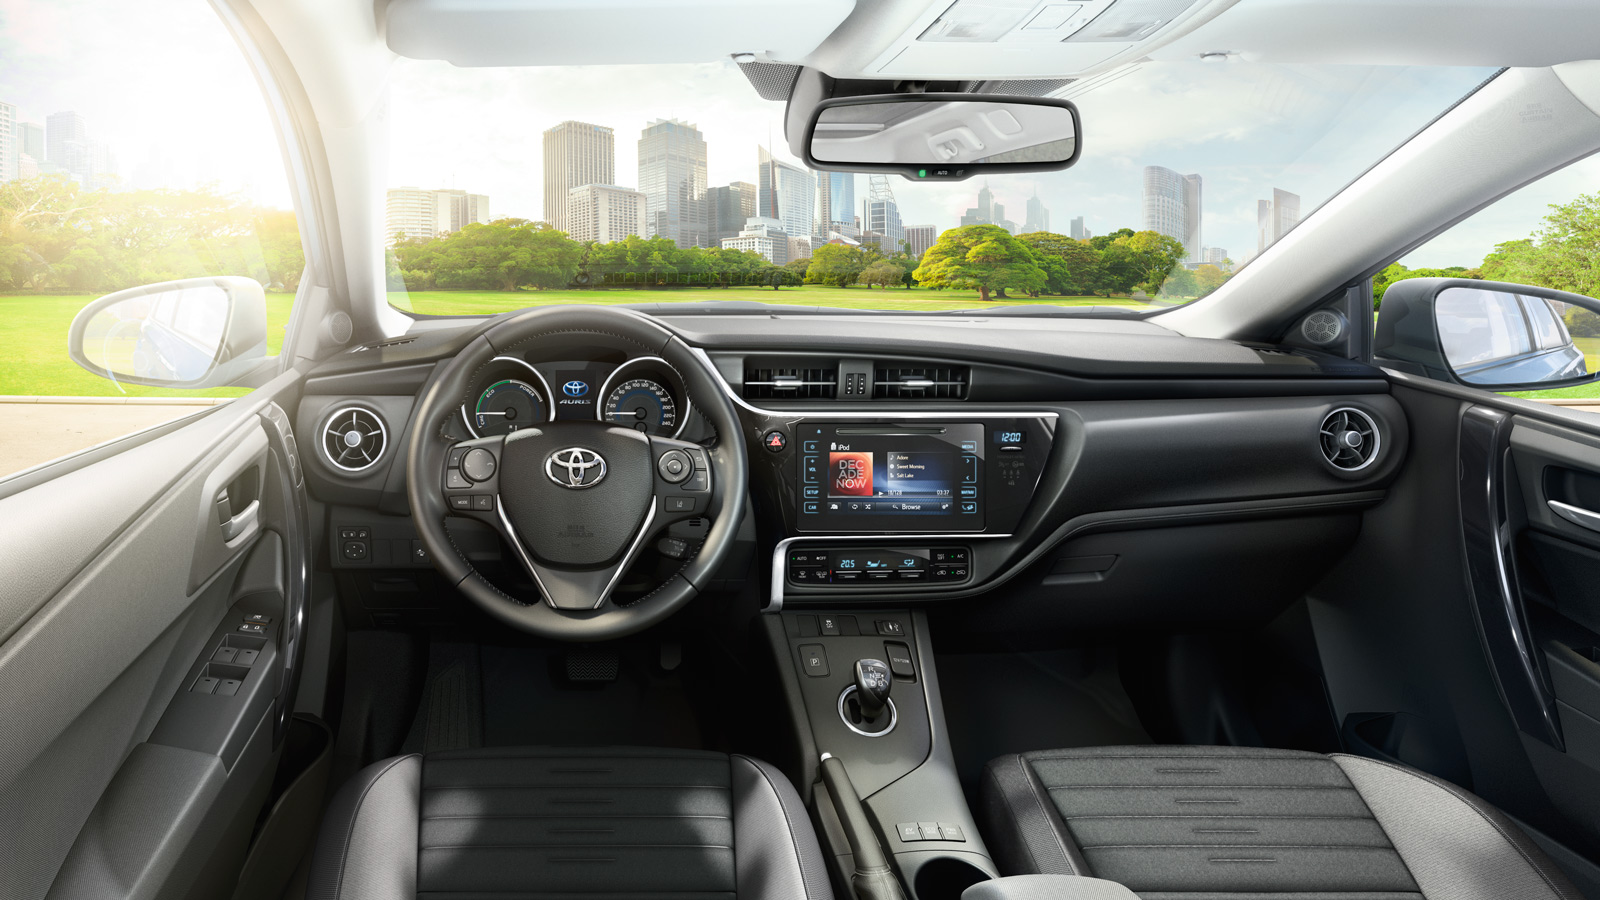 Toyota auris garage e mattm ller ag for Interieur yaris 2015